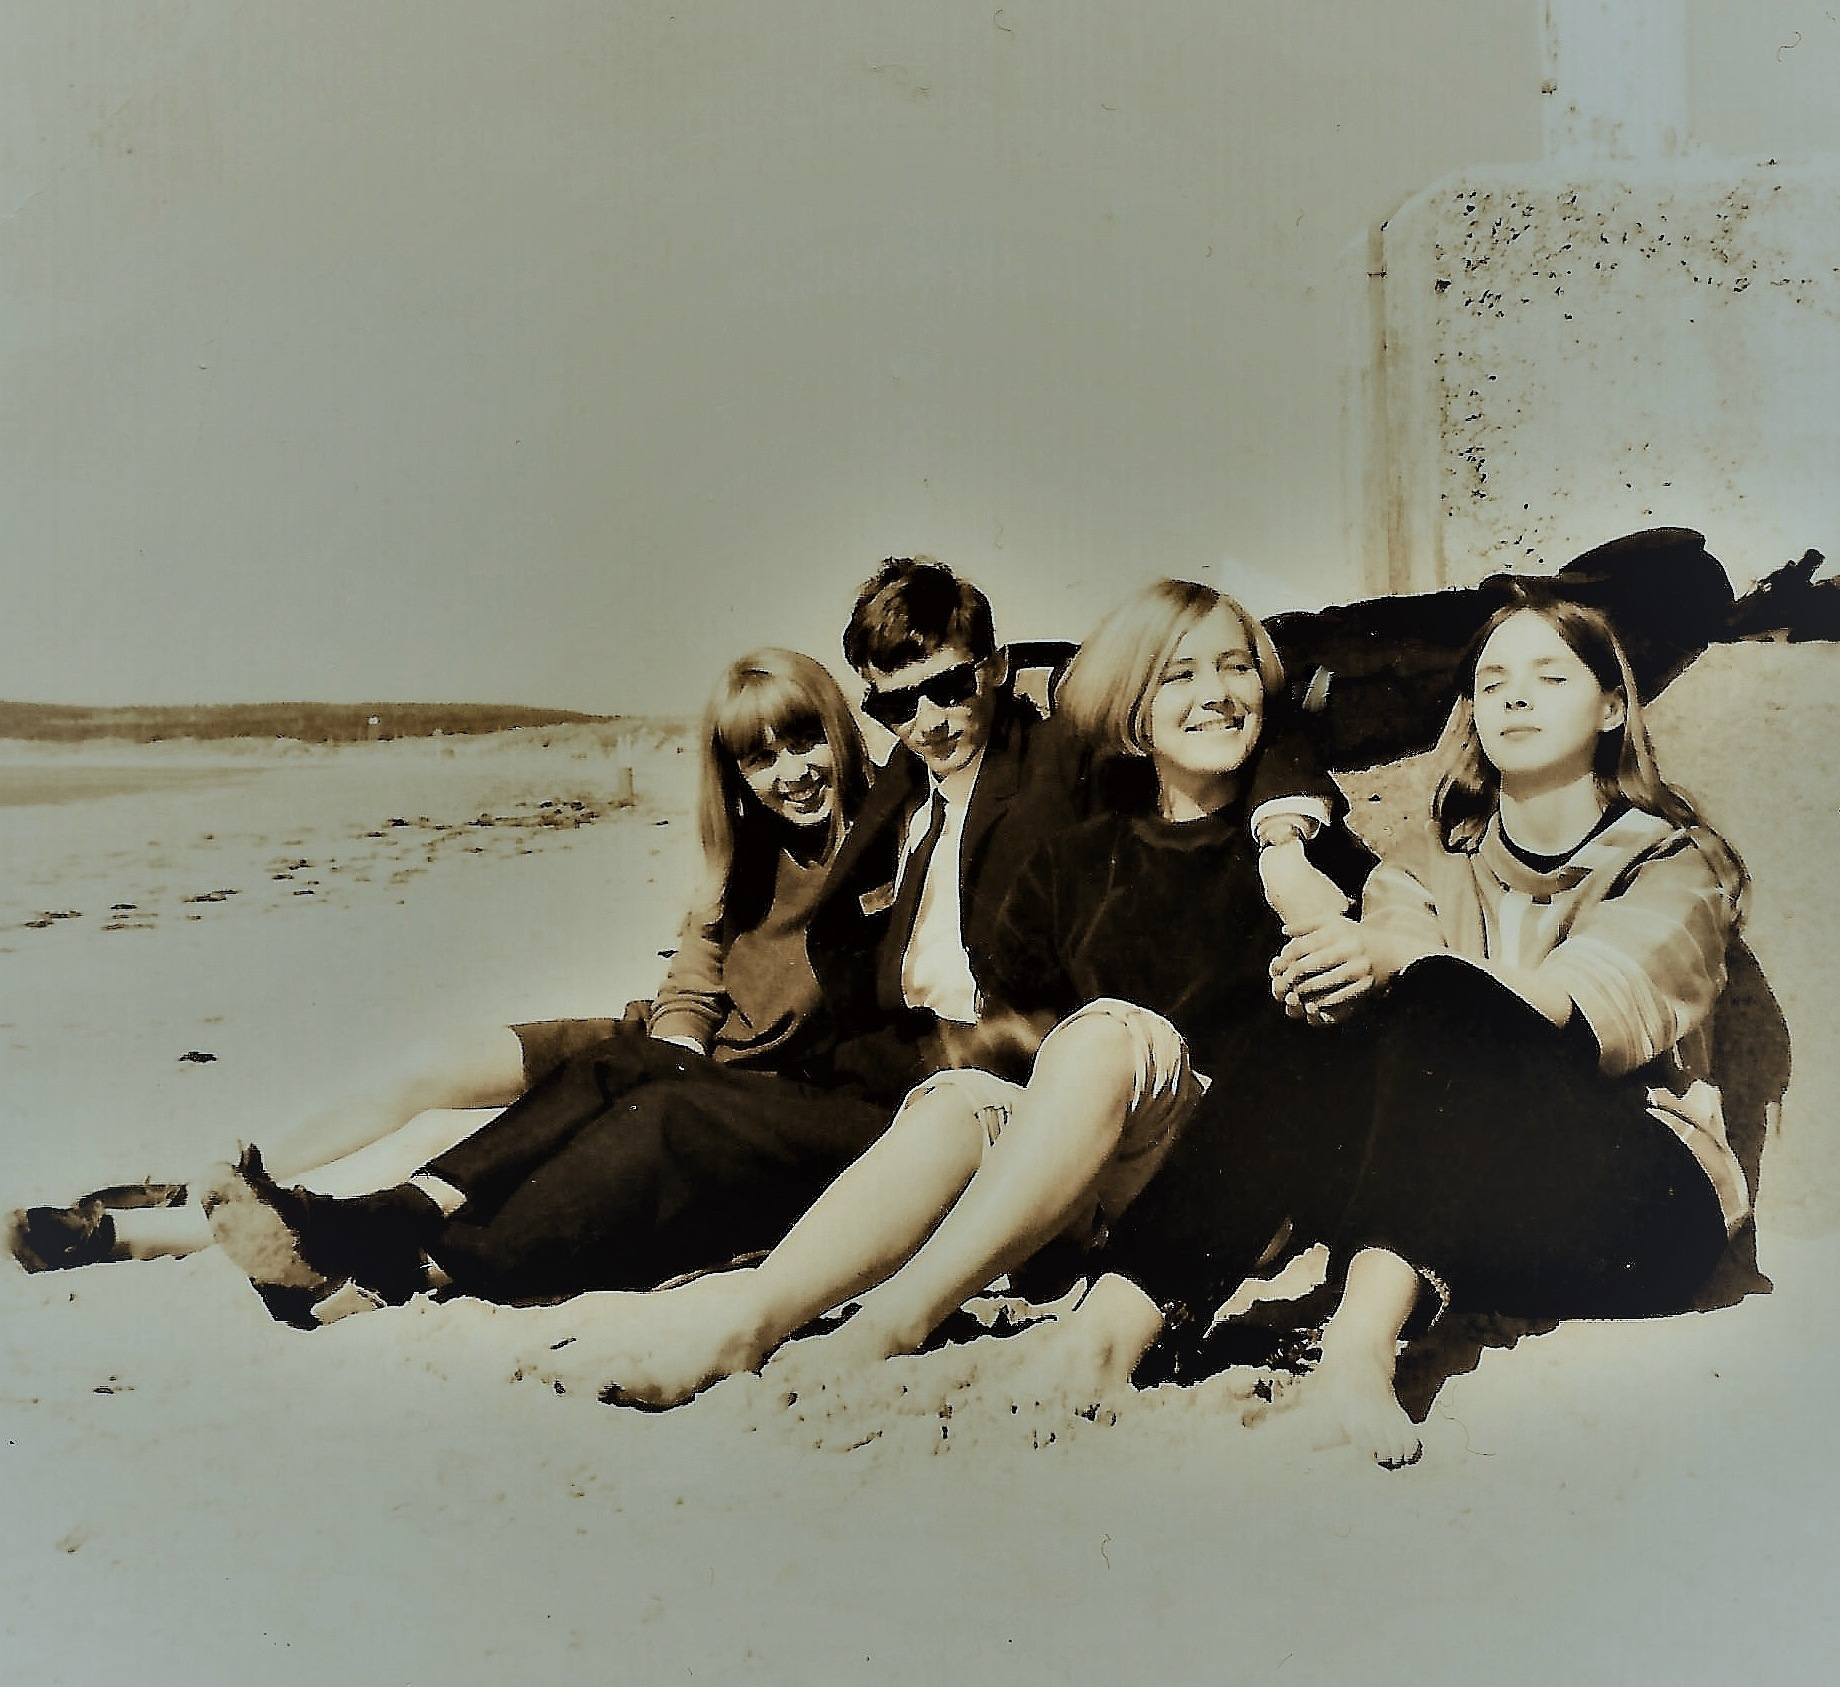 Selfie with retro-girls at the beach (happy days) by rolf persson